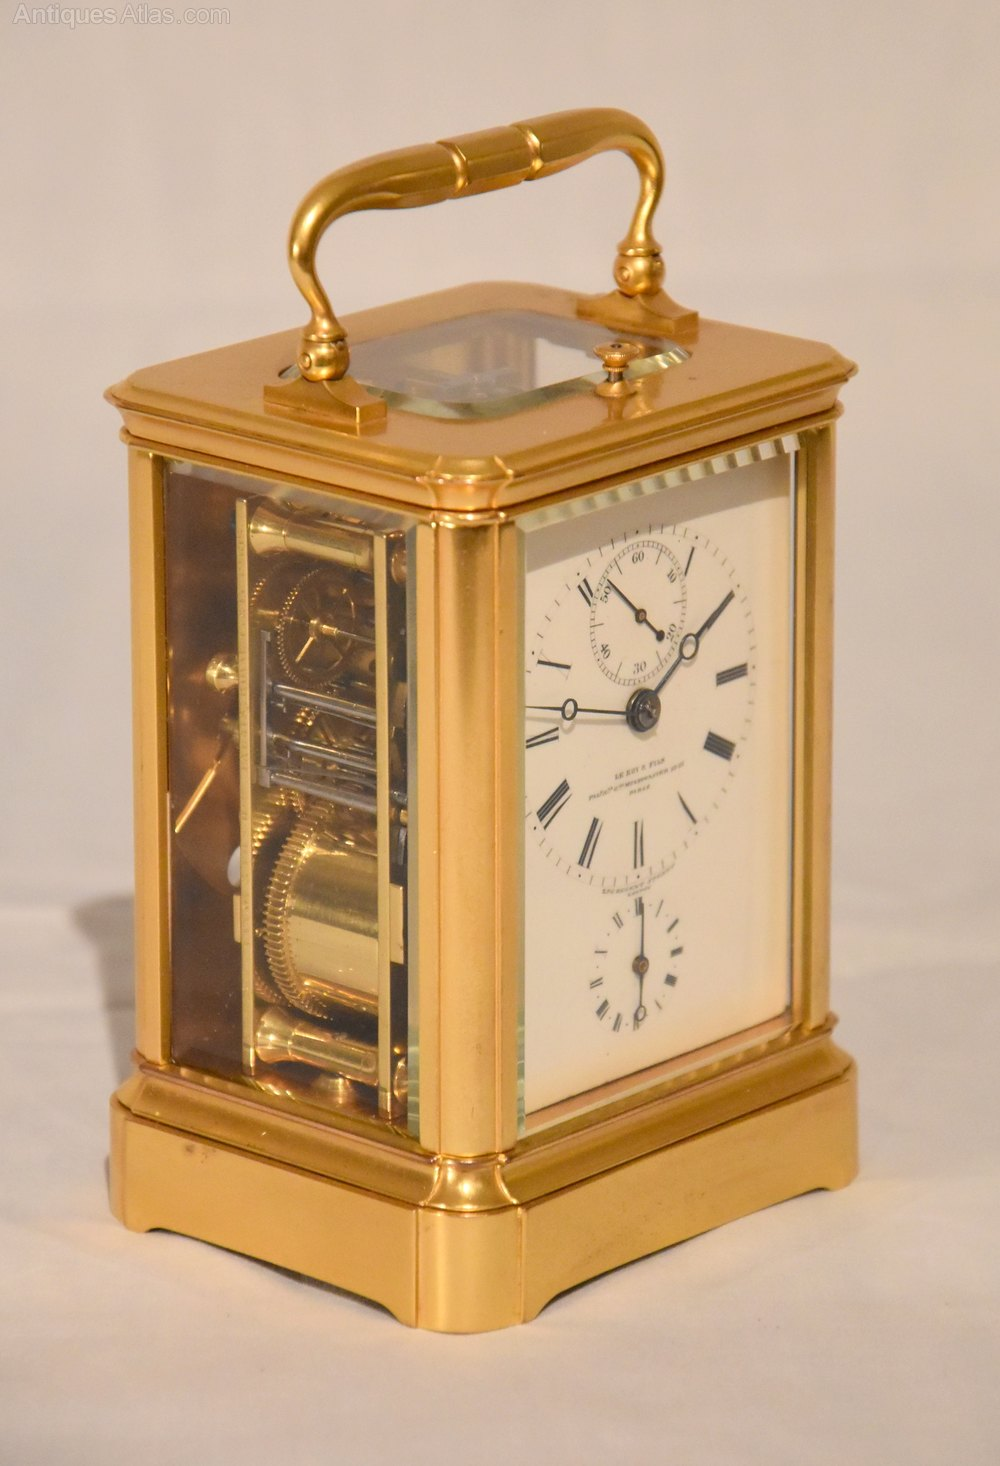 Antiques Atlas A Petite Sonnerie Carriage Clock With